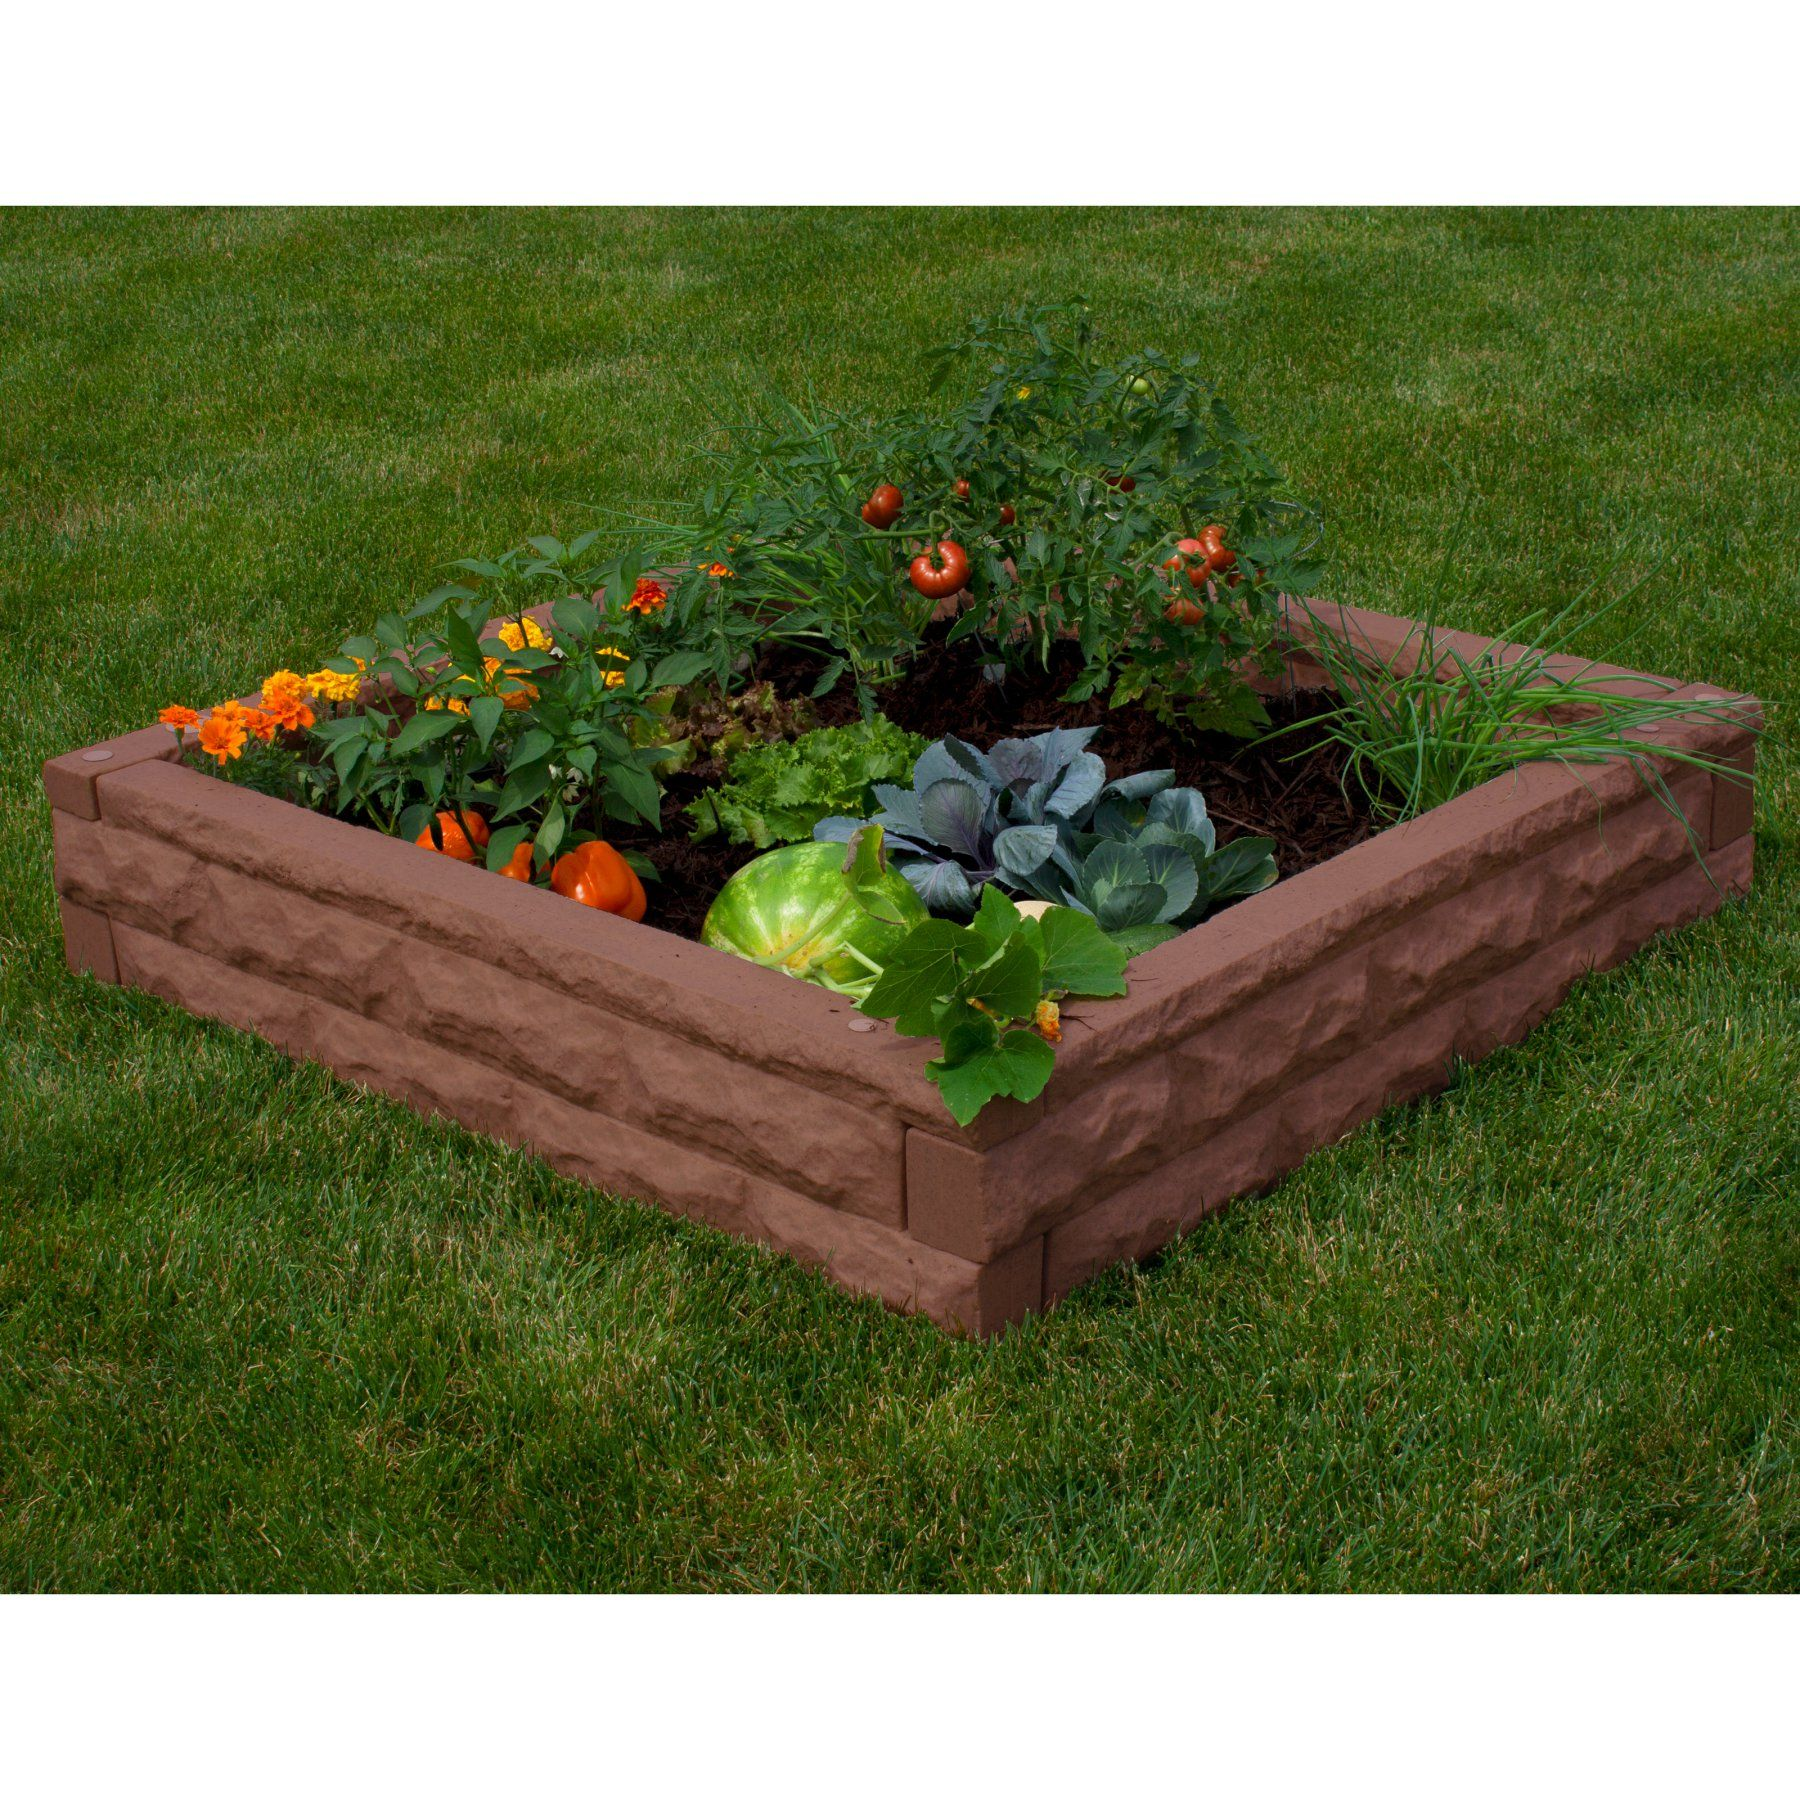 Good Ideas Raised Bed Garden Watering raised garden beds